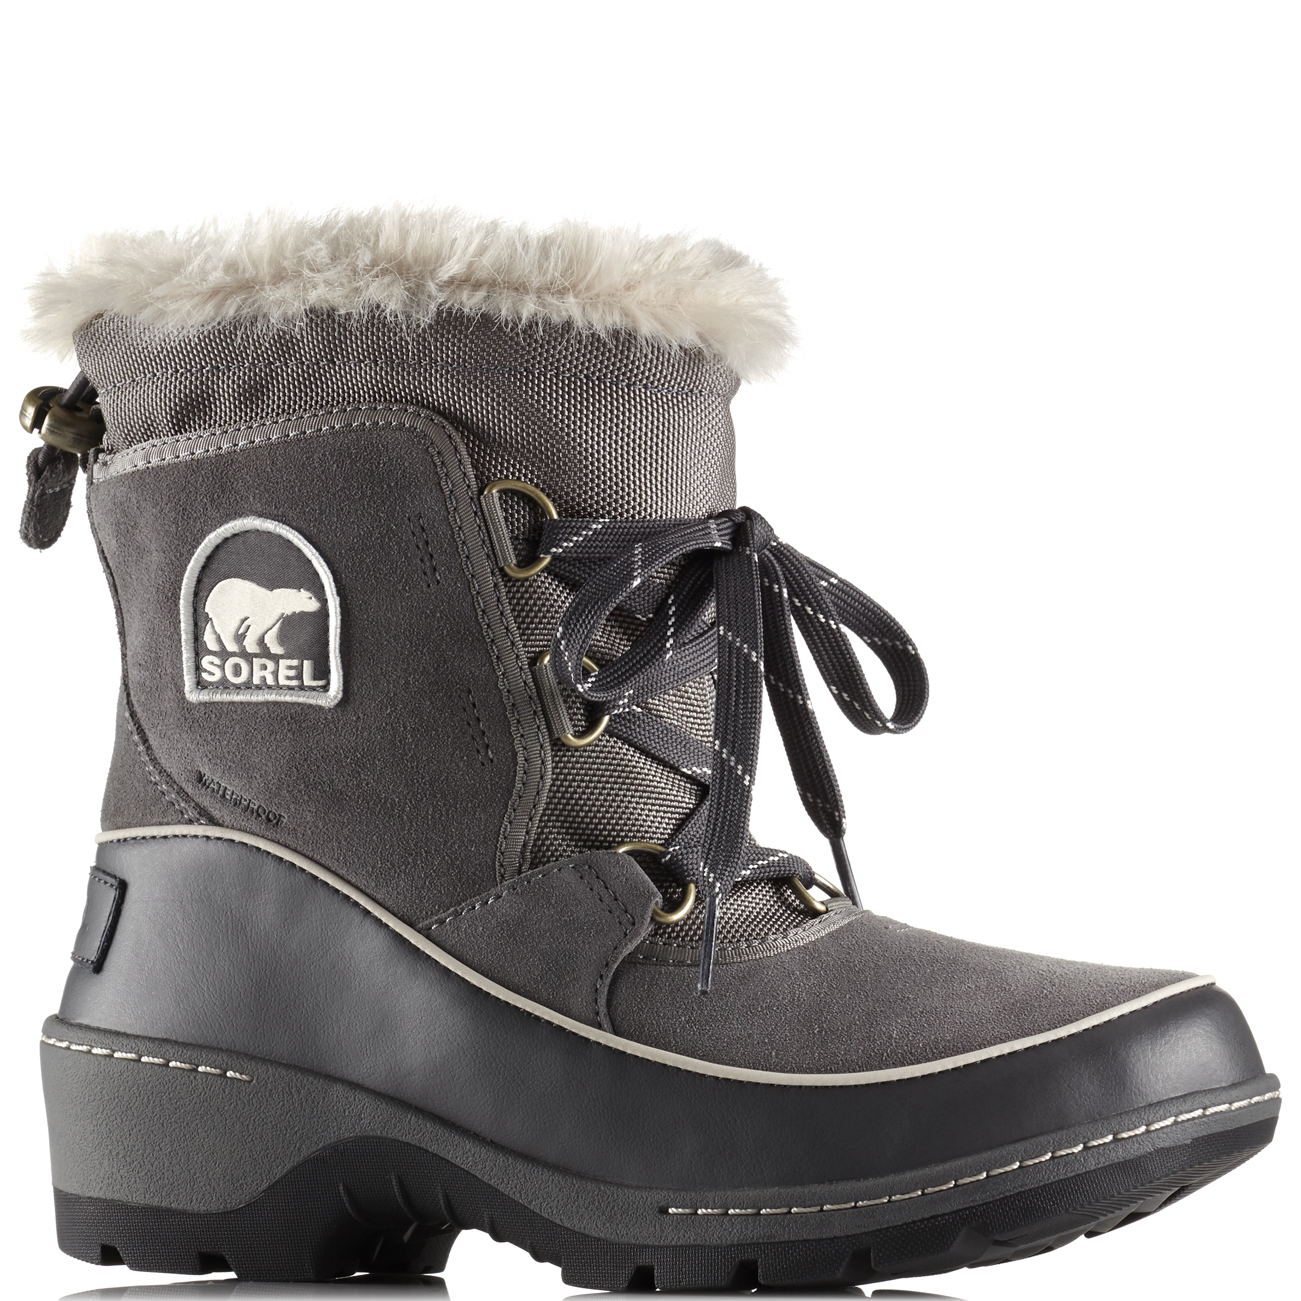 Womens Sorel Torino Snow Walking Hiker Waterproof Winter Ankle Rain Boot